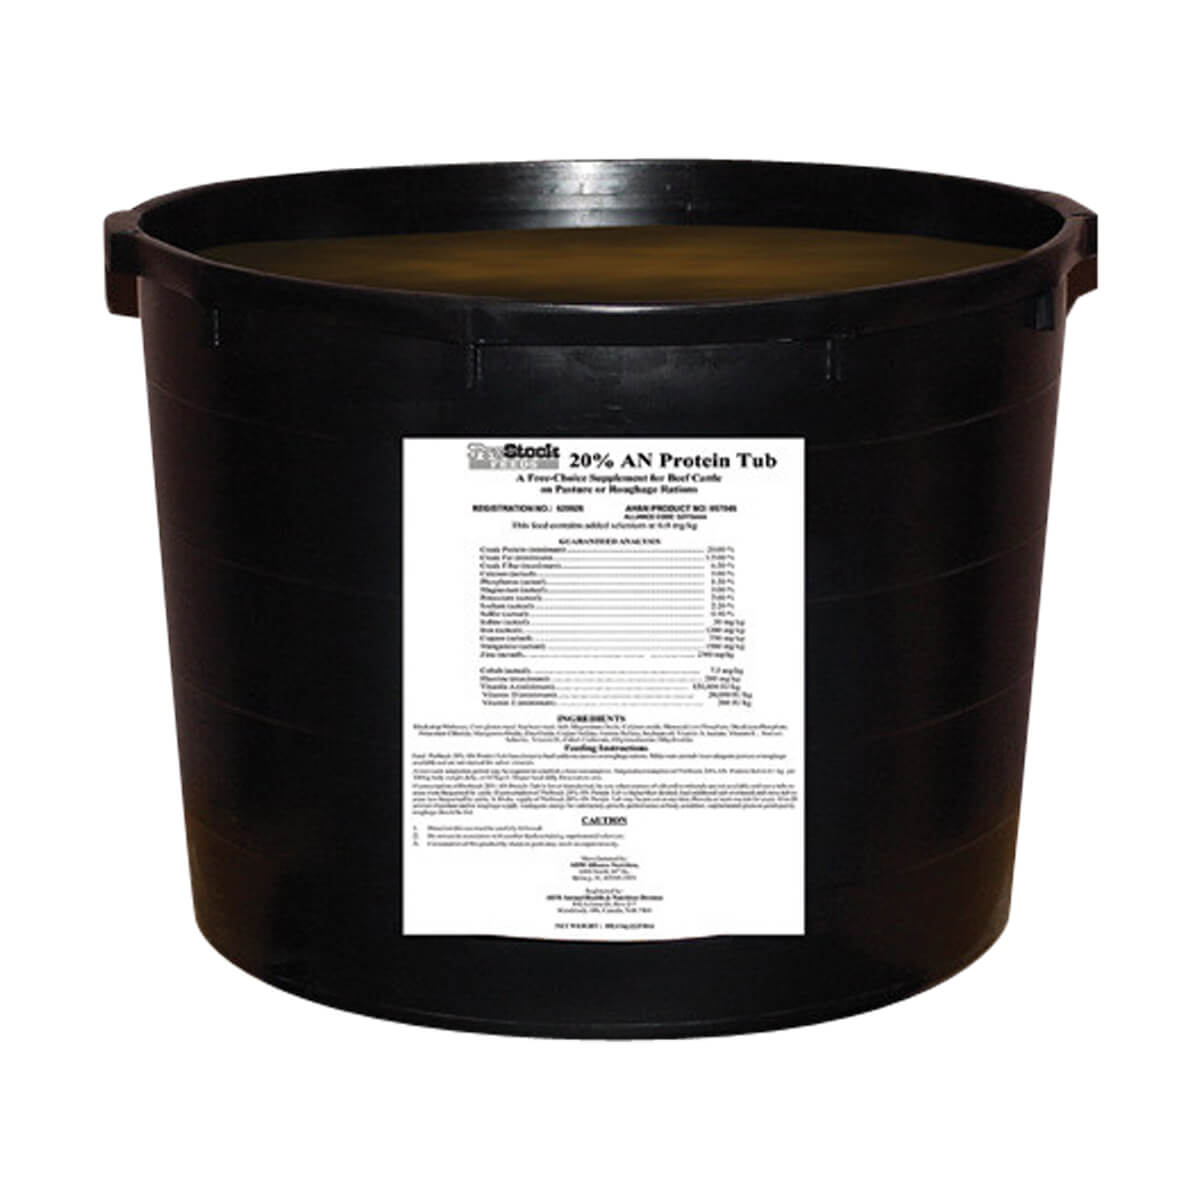 20% All Natural Protein Tub - 102 kg